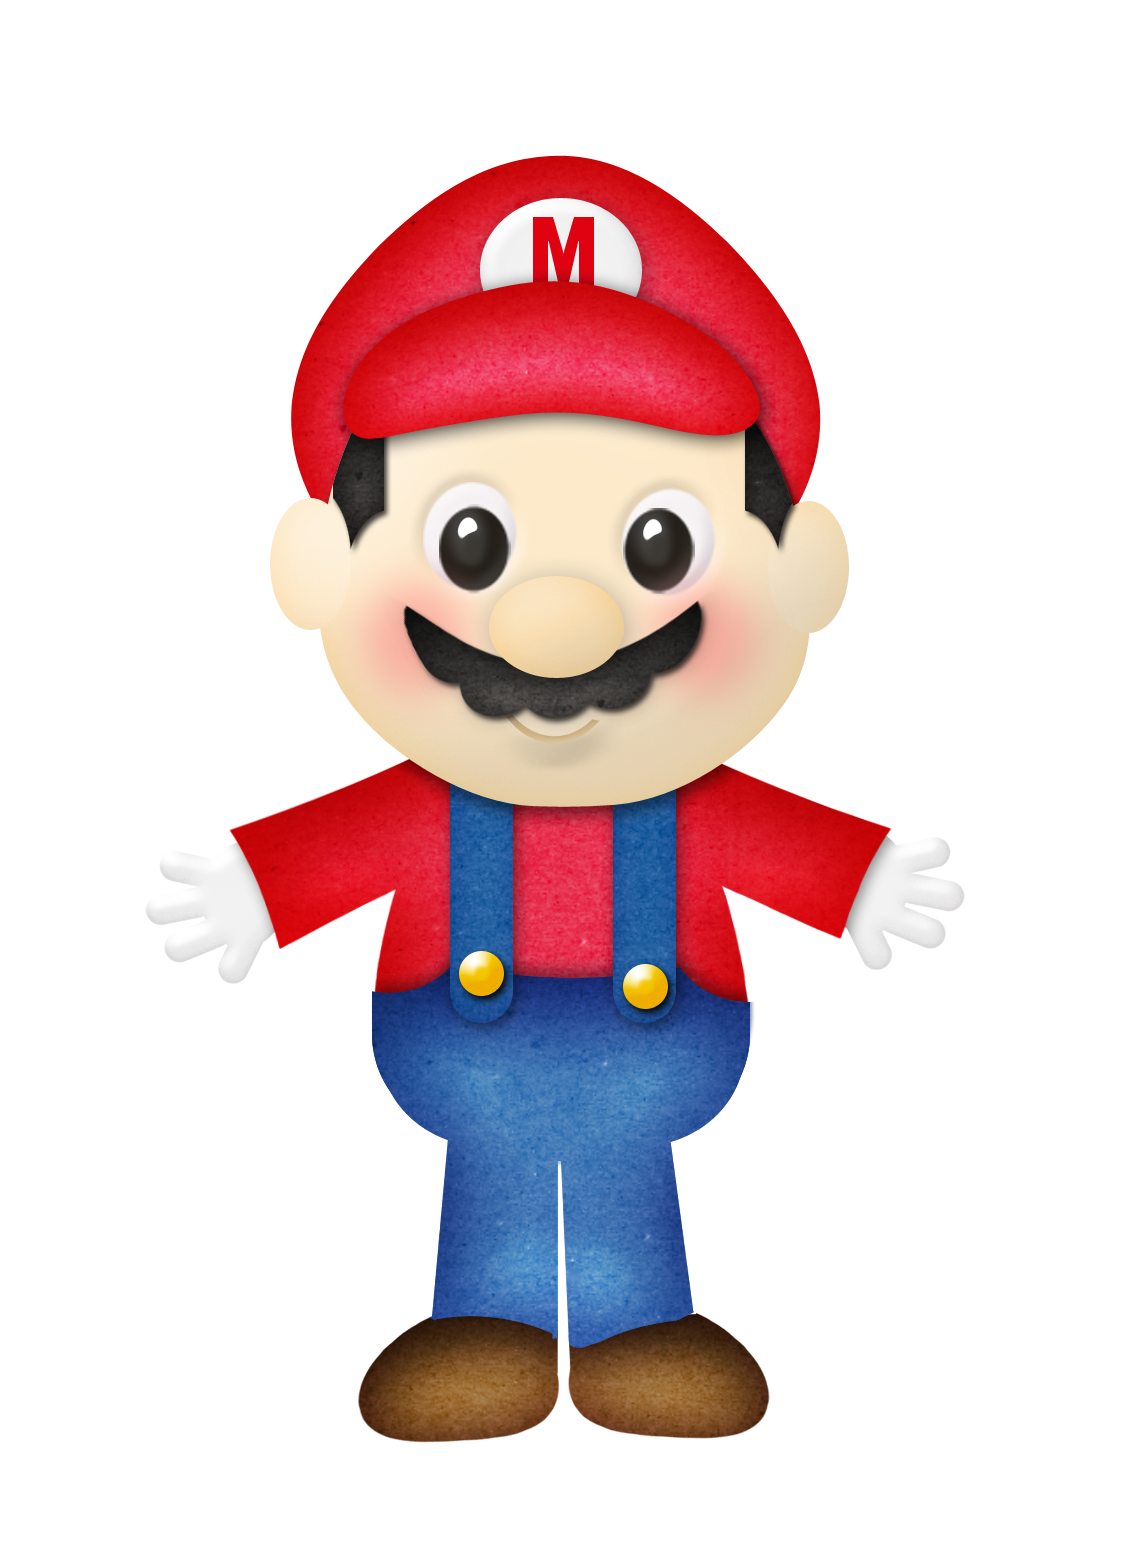 This is a picture of Fan Mario Brothers Images